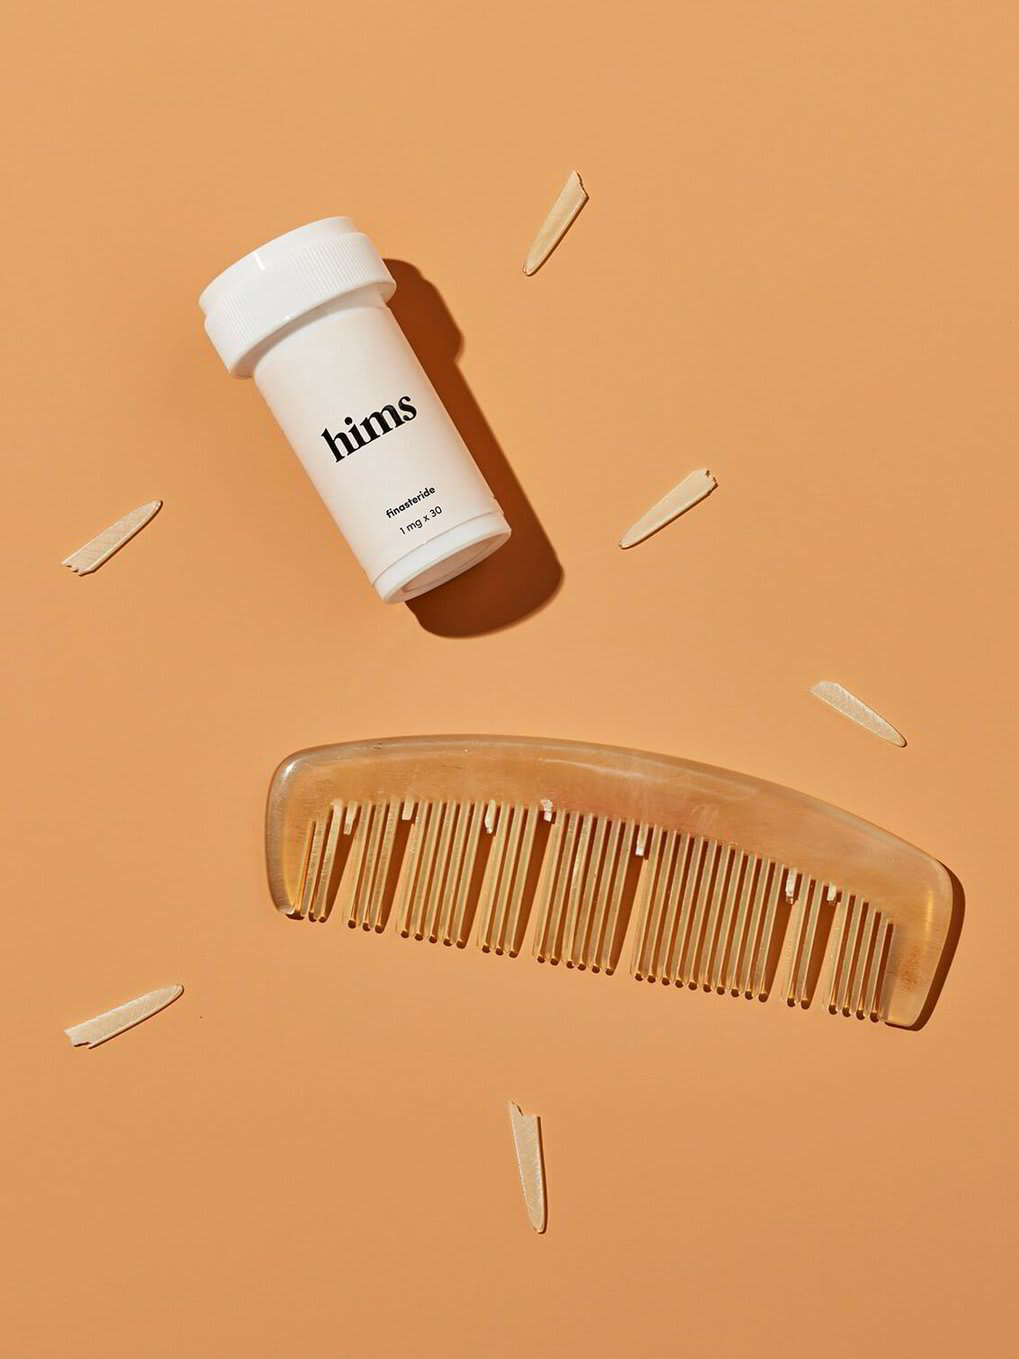 A pill bottle and a comb with its teeth falling out